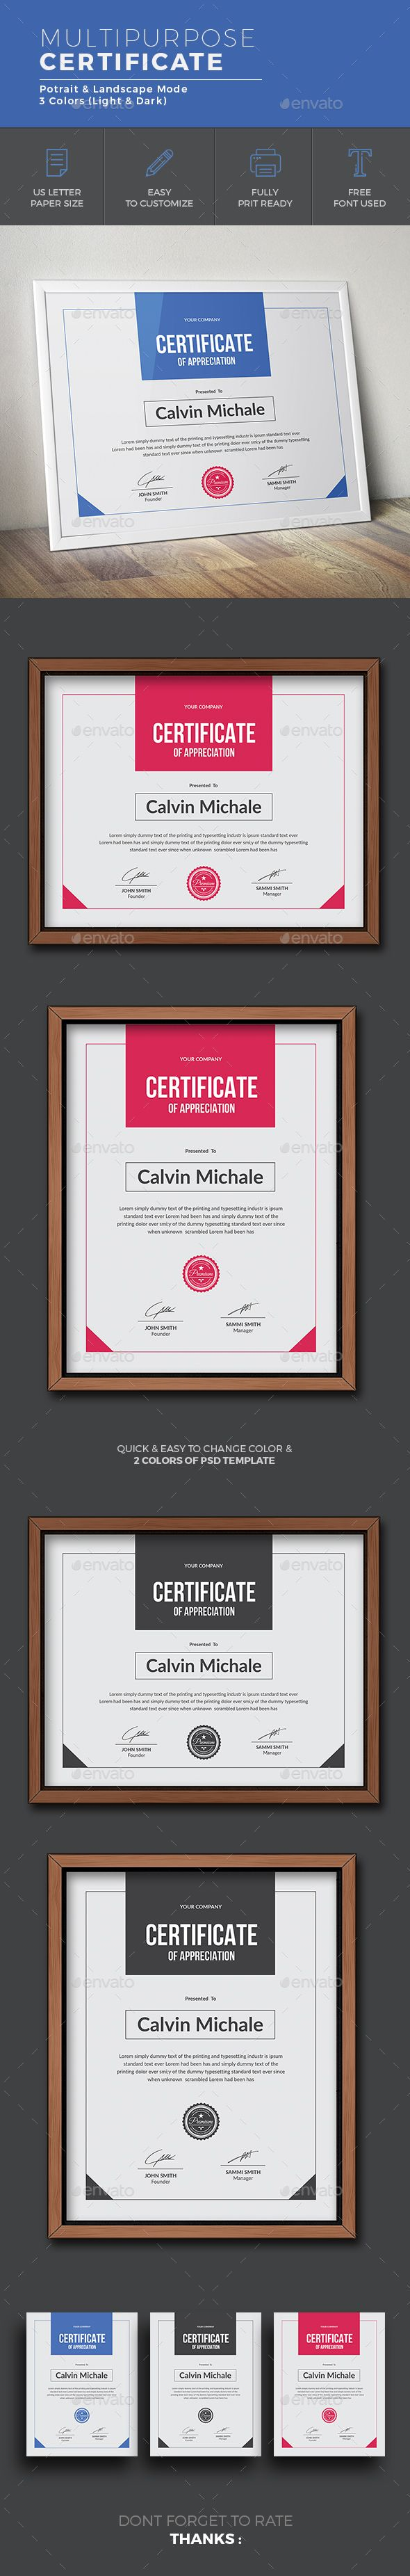 Certificate Template PSD, AI Illustrator, MS Word (DOC & DOCX)